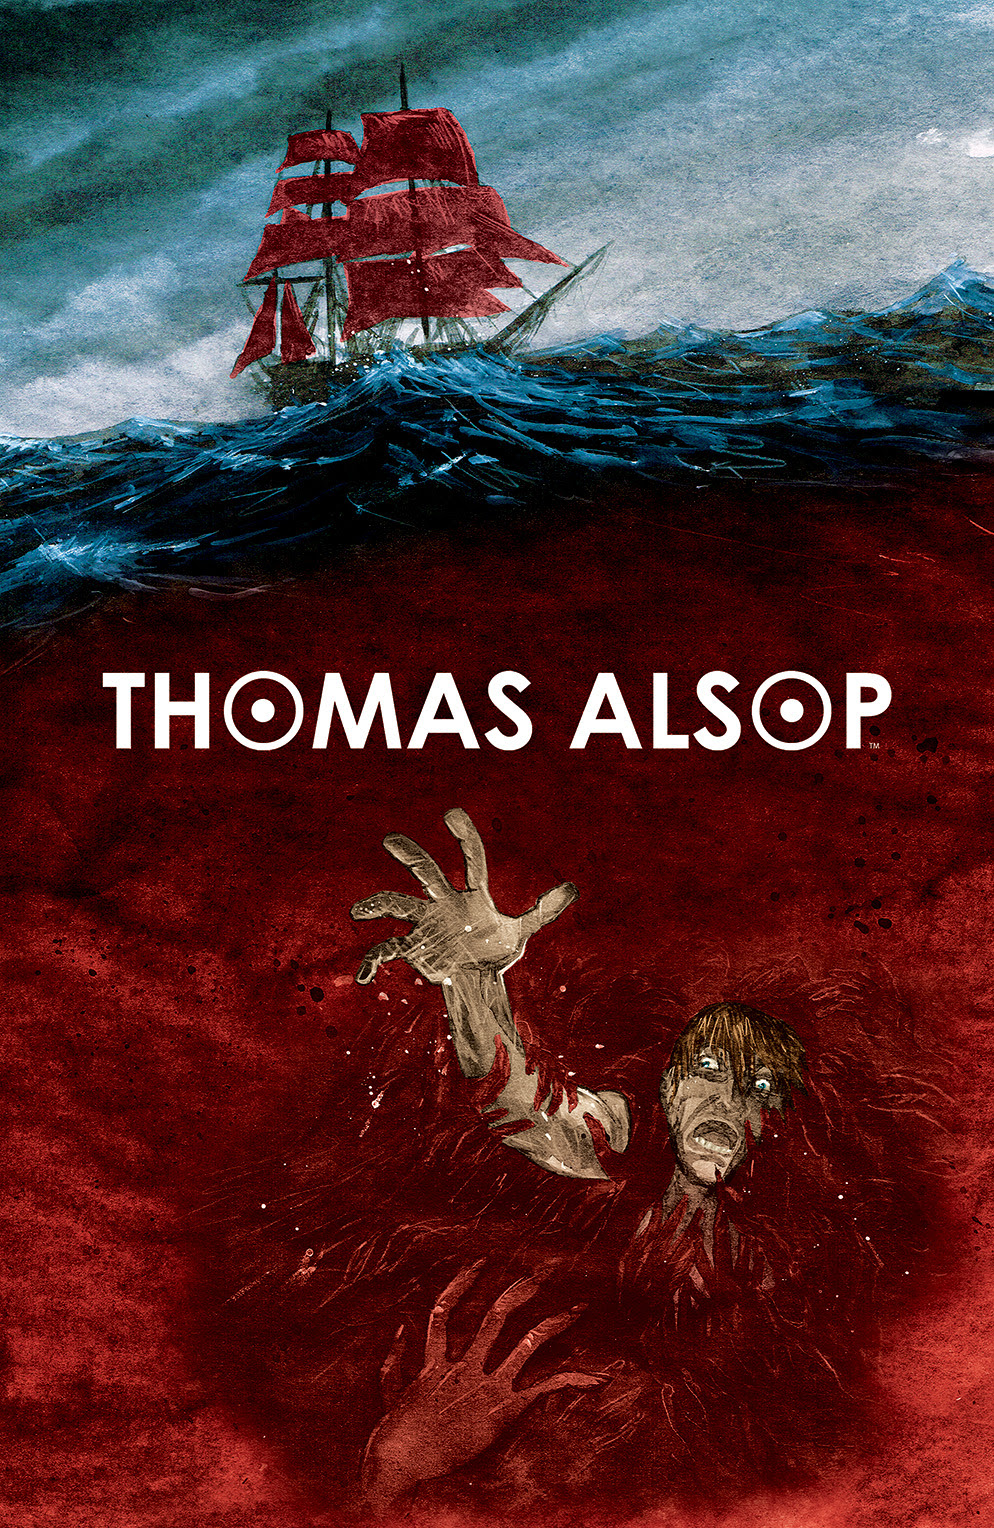 THOMAS ALSOP #3 Cover by Palle Schmidt